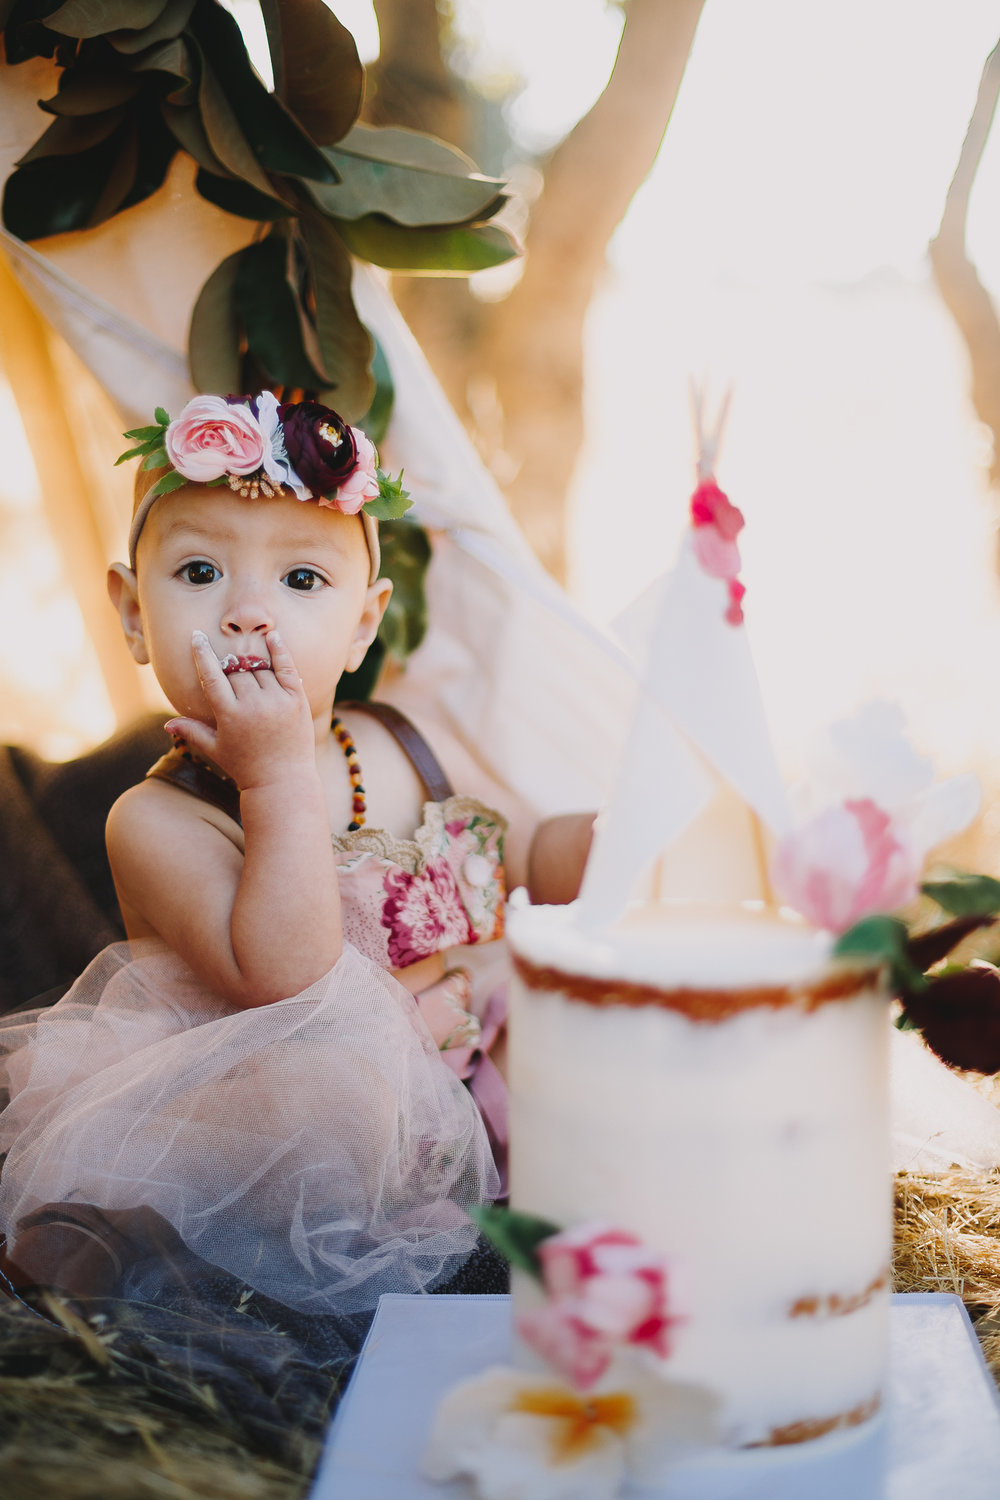 Archer_Inspired_Photography_Olivia_Daisy_Boho_Stylized_One_Year_Old_Cake_Smash_Shoot_Morgan_Hill_California-102.jpg